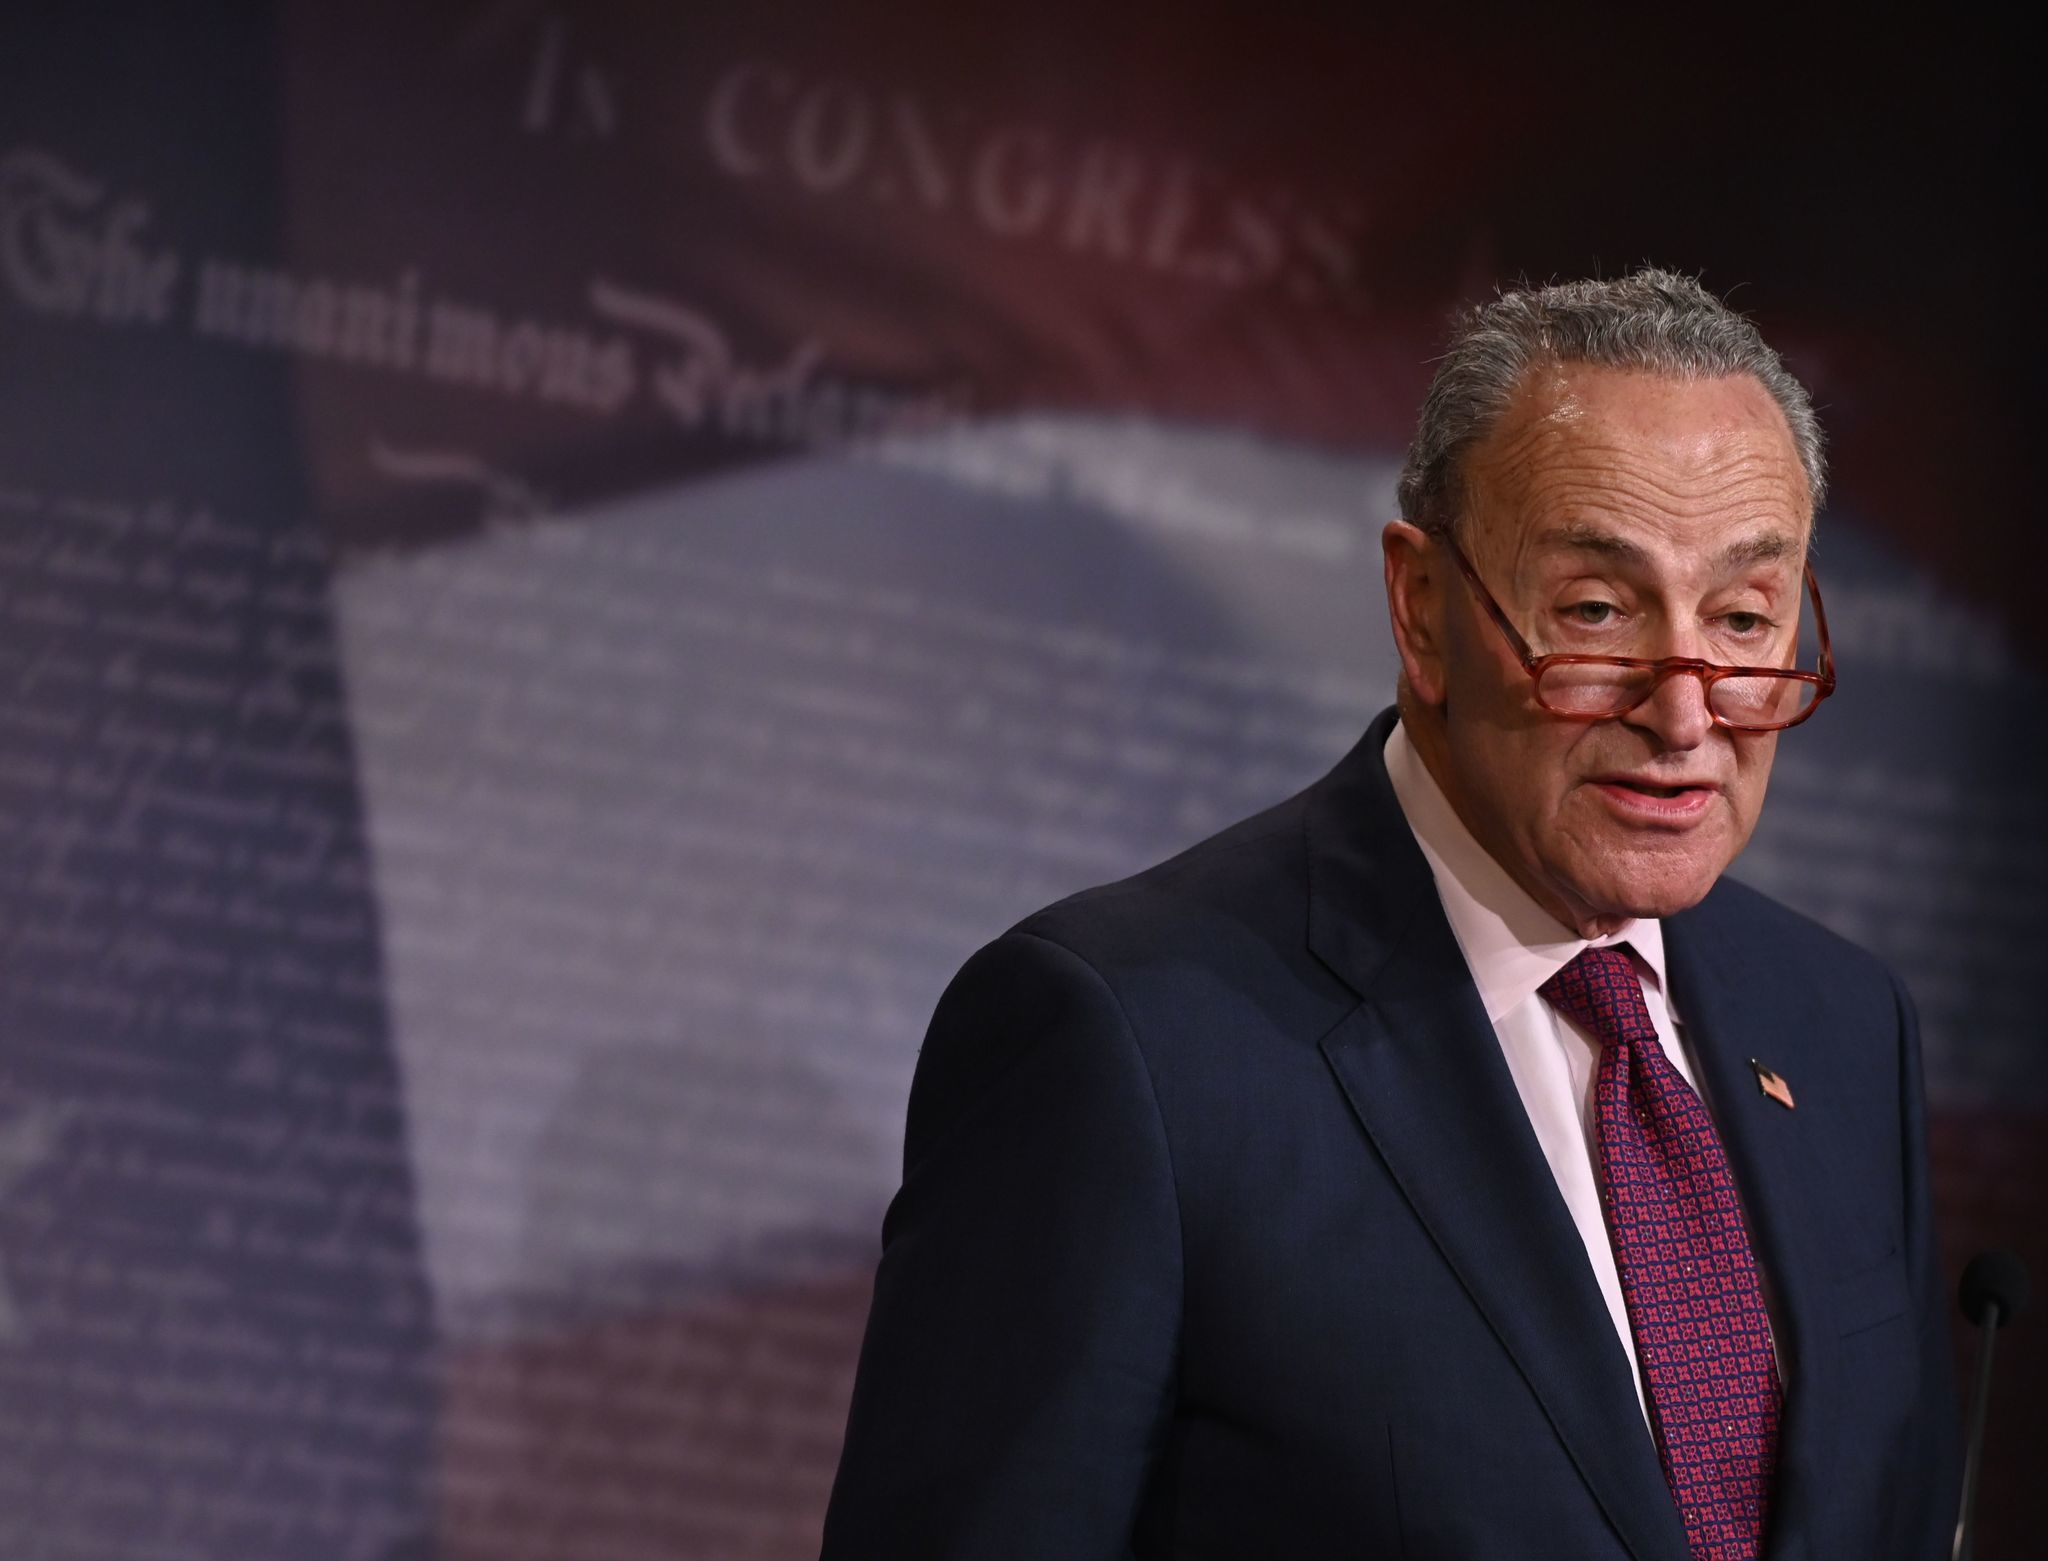 Schumer proposes outline for impeachment trial, wants Mulvaney, Bolton to testify, documents related to charges